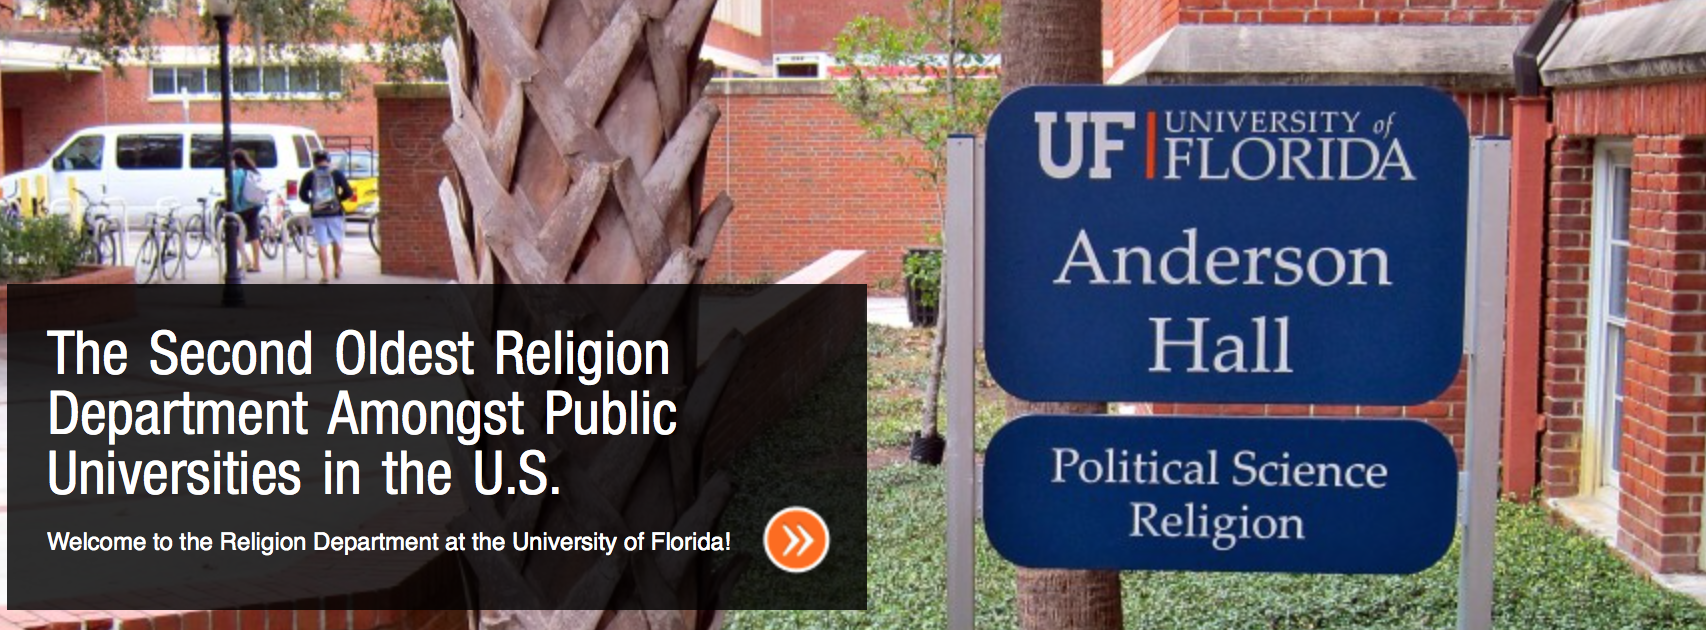 The University of Florida's religion department is interdisciplinary in nature. In approaching religion, the program  encourages students to draw on work in the humanities, social sciences, and natural sciences.